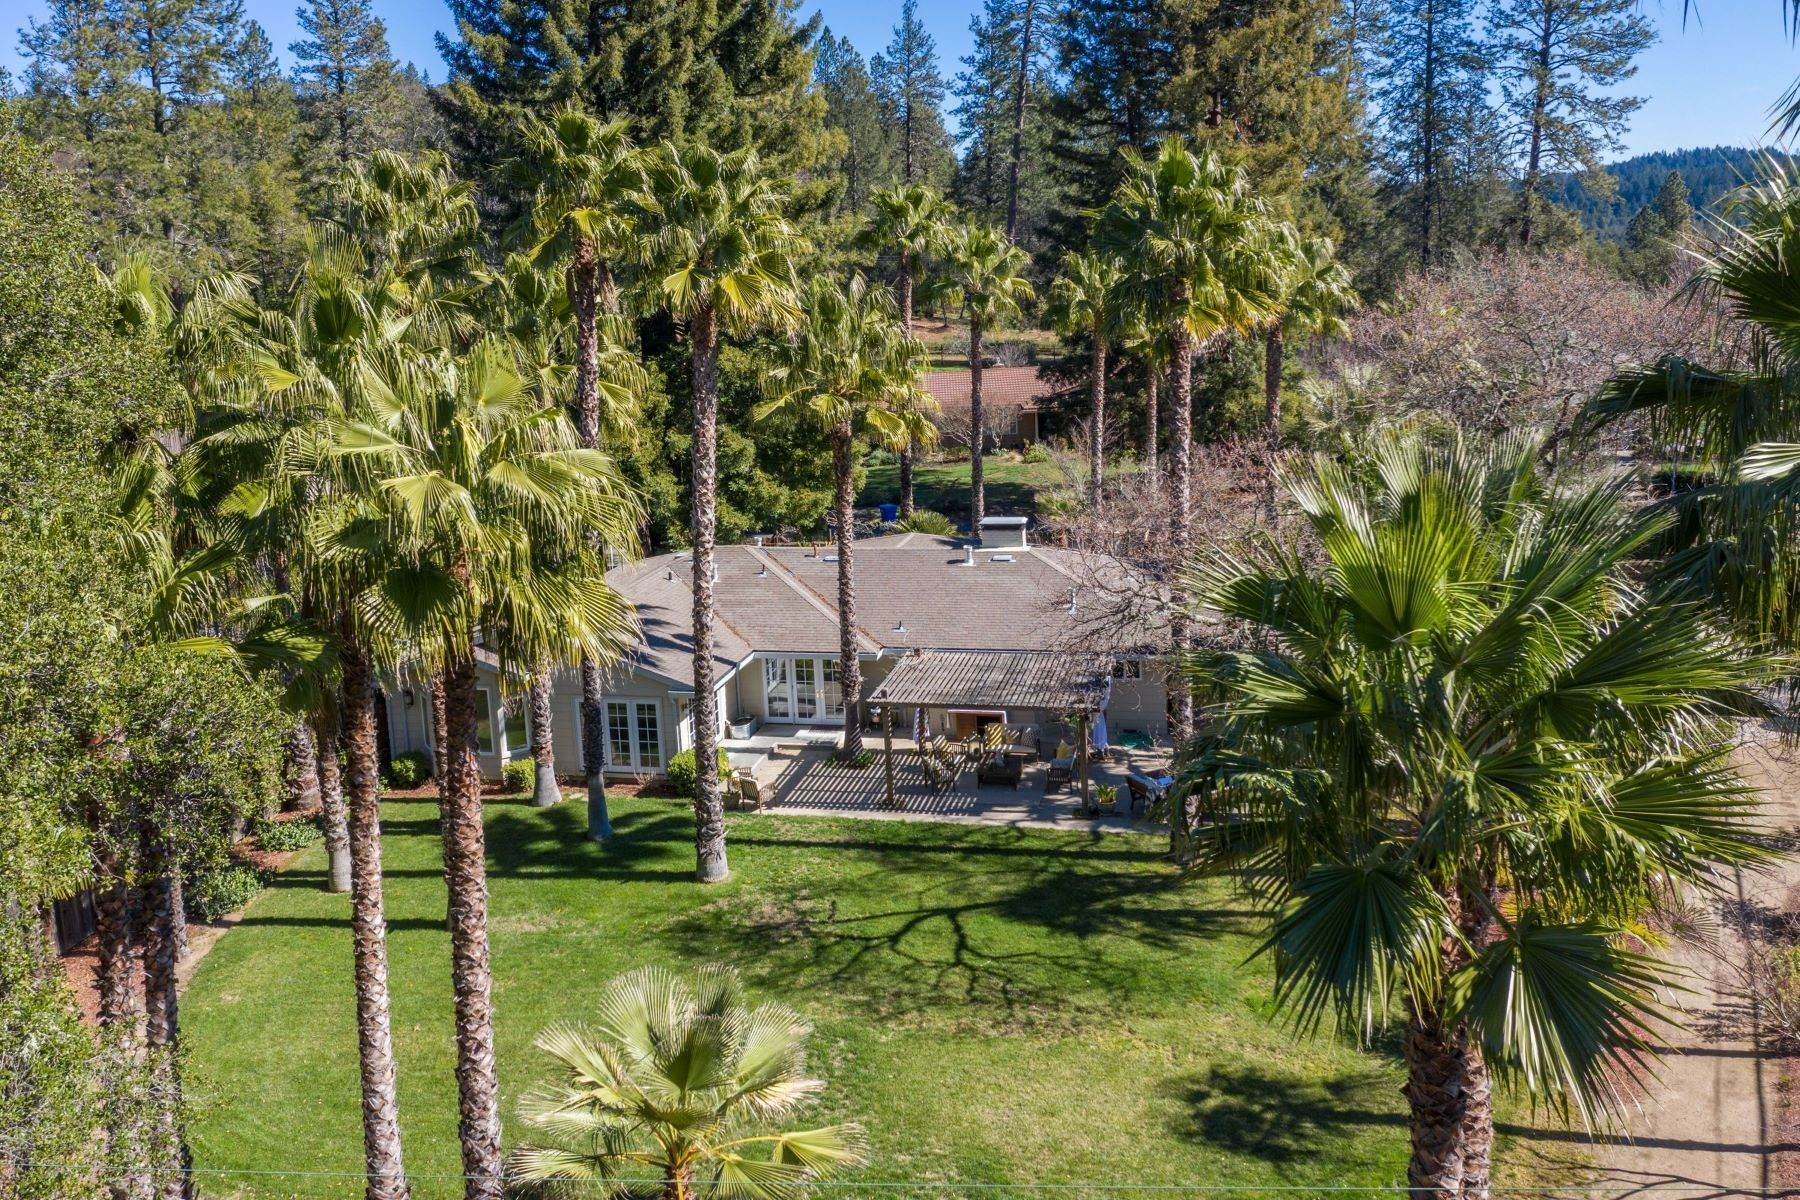 Single Family Homes for Sale at Elegant Country Home in Park-Like Setting 541 Sunset Drive Angwin, California 94508 United States